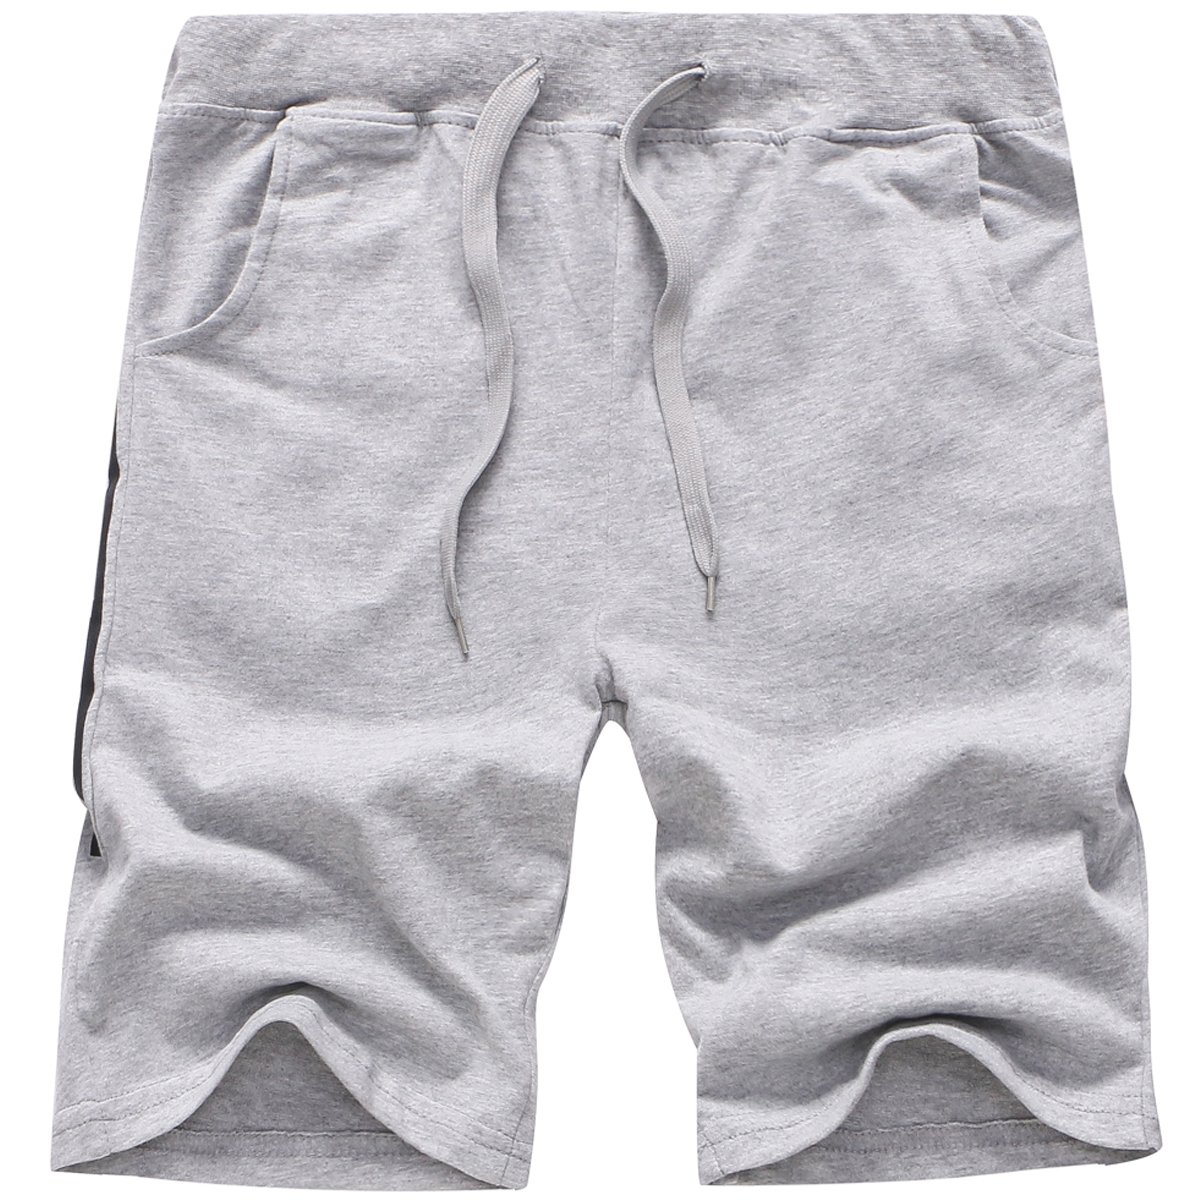 Boy's Cotton Elastic Waist Letter Print Pull On Jogger Sports Active Casual Shorts, Grey, Age 5T-6T (5-6 Years) = Tag 130